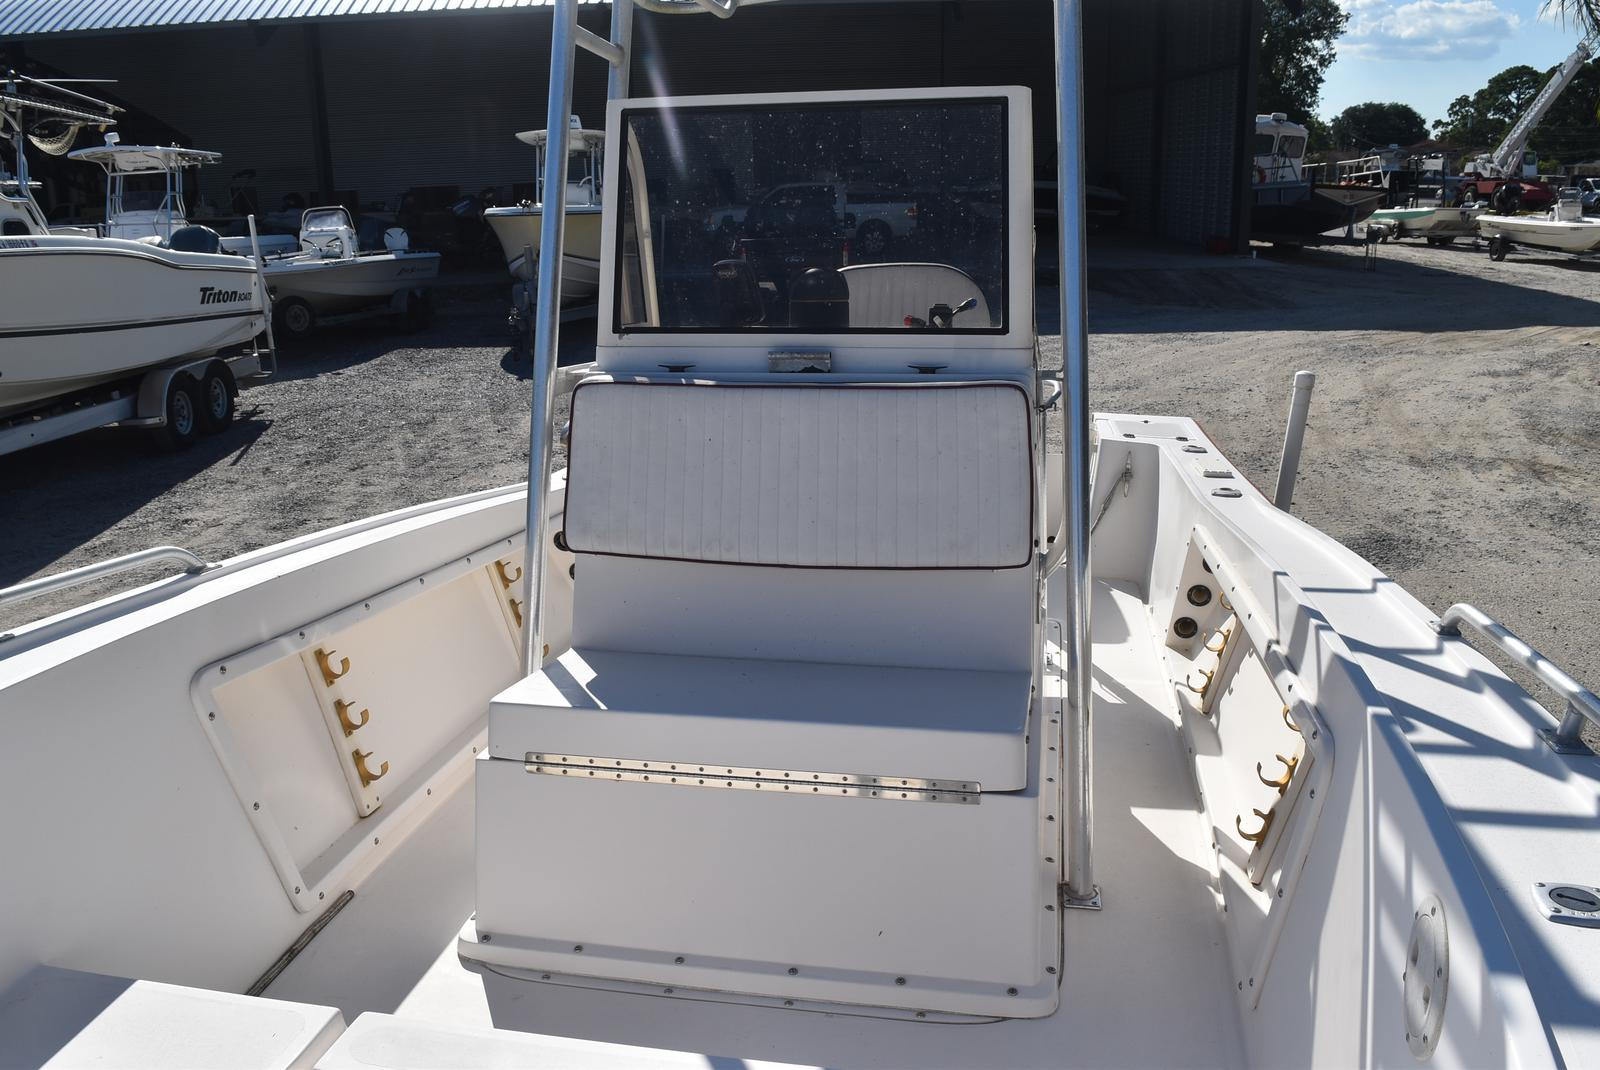 1996 Mako boat for sale, model of the boat is 22 Mako & Image # 46 of 390